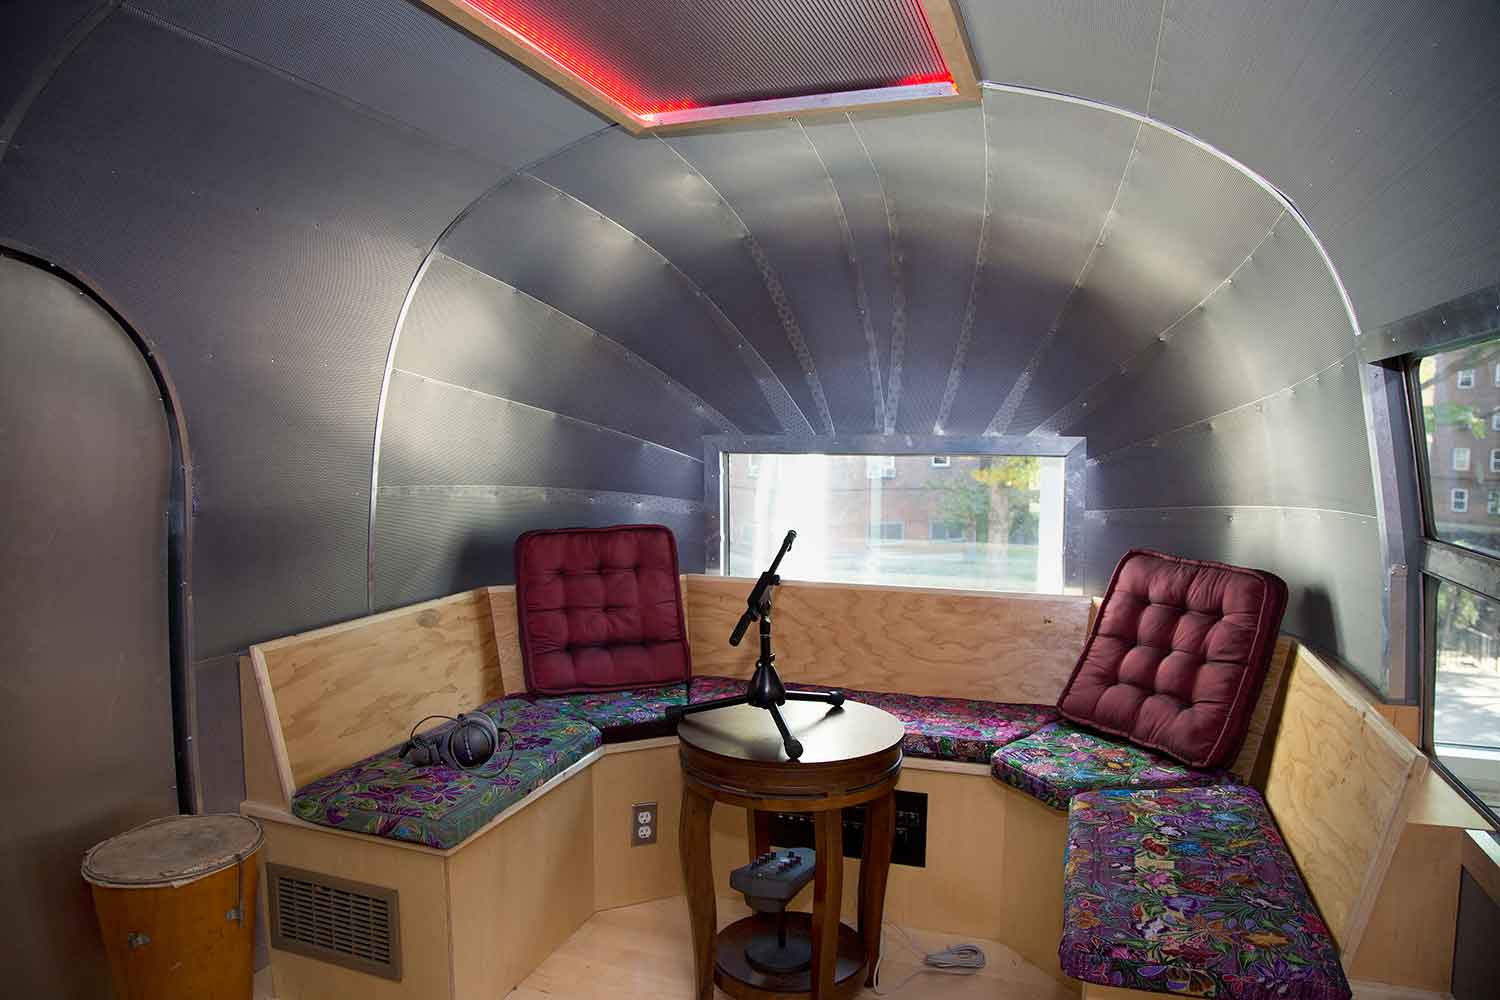 Lower East Side Girls Club Airstream Recording Studio designed by WSDG. Airstream interior lounge and live recording room.